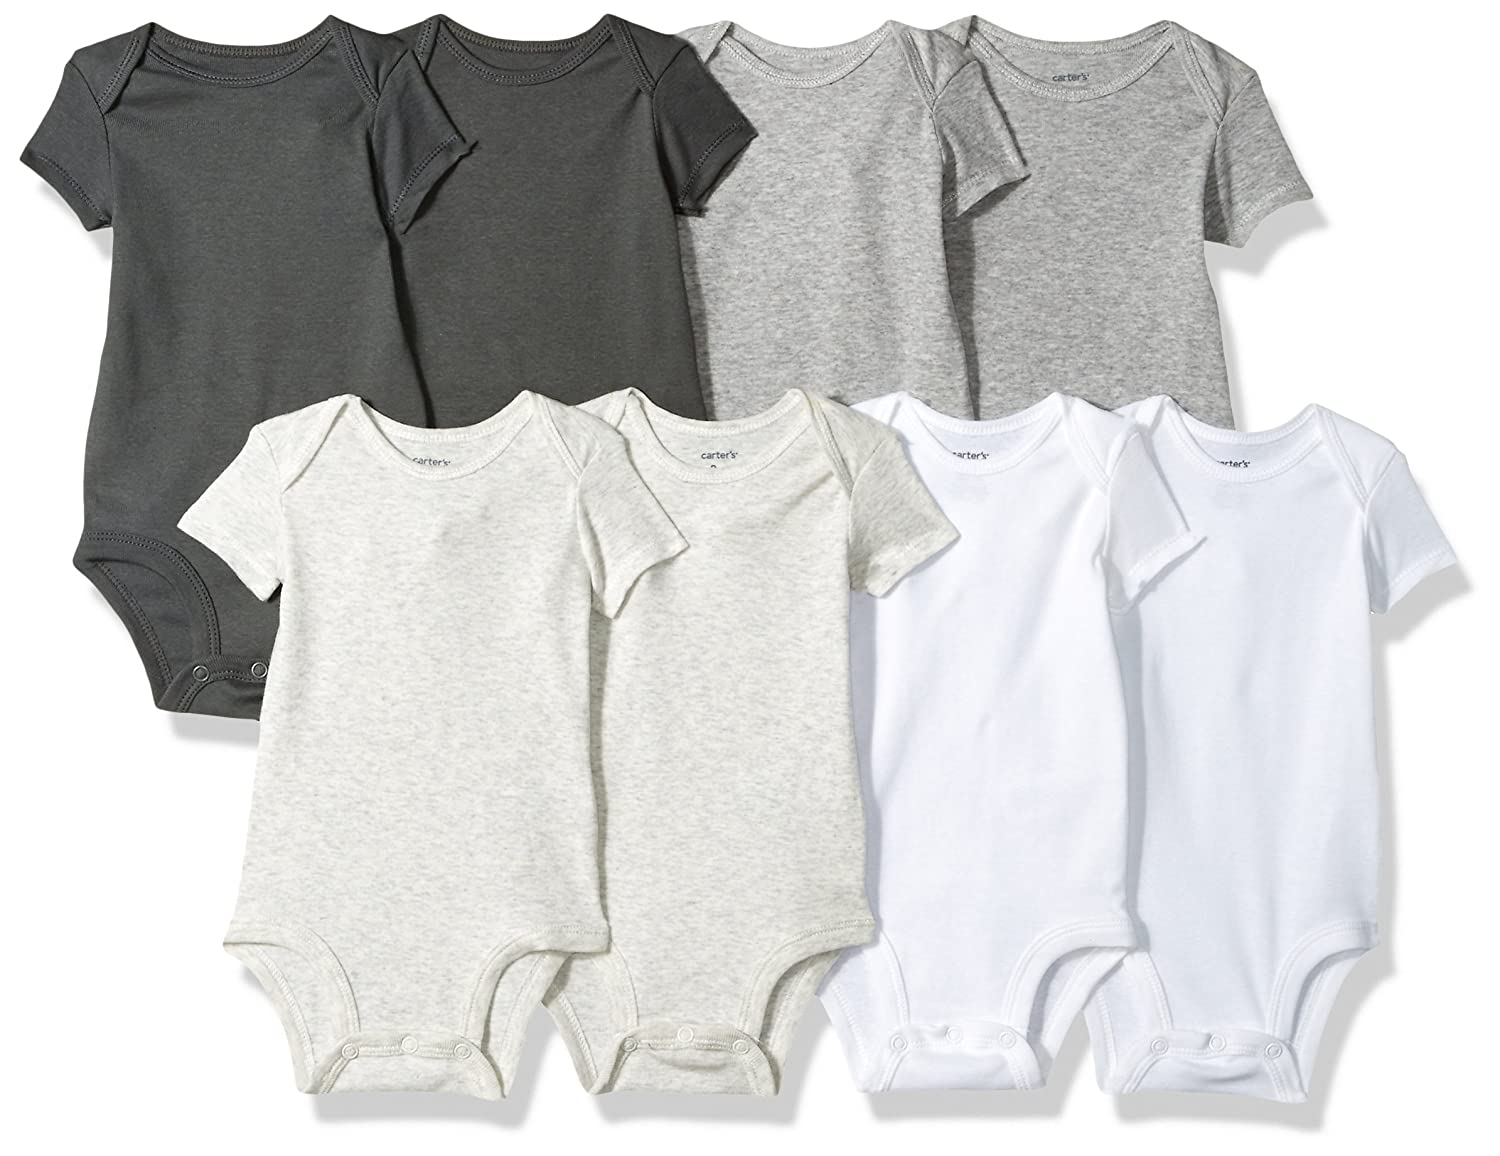 Carter's Baby Boys' 8 Pack Short-Sleeve Bodysuits Carters KBC